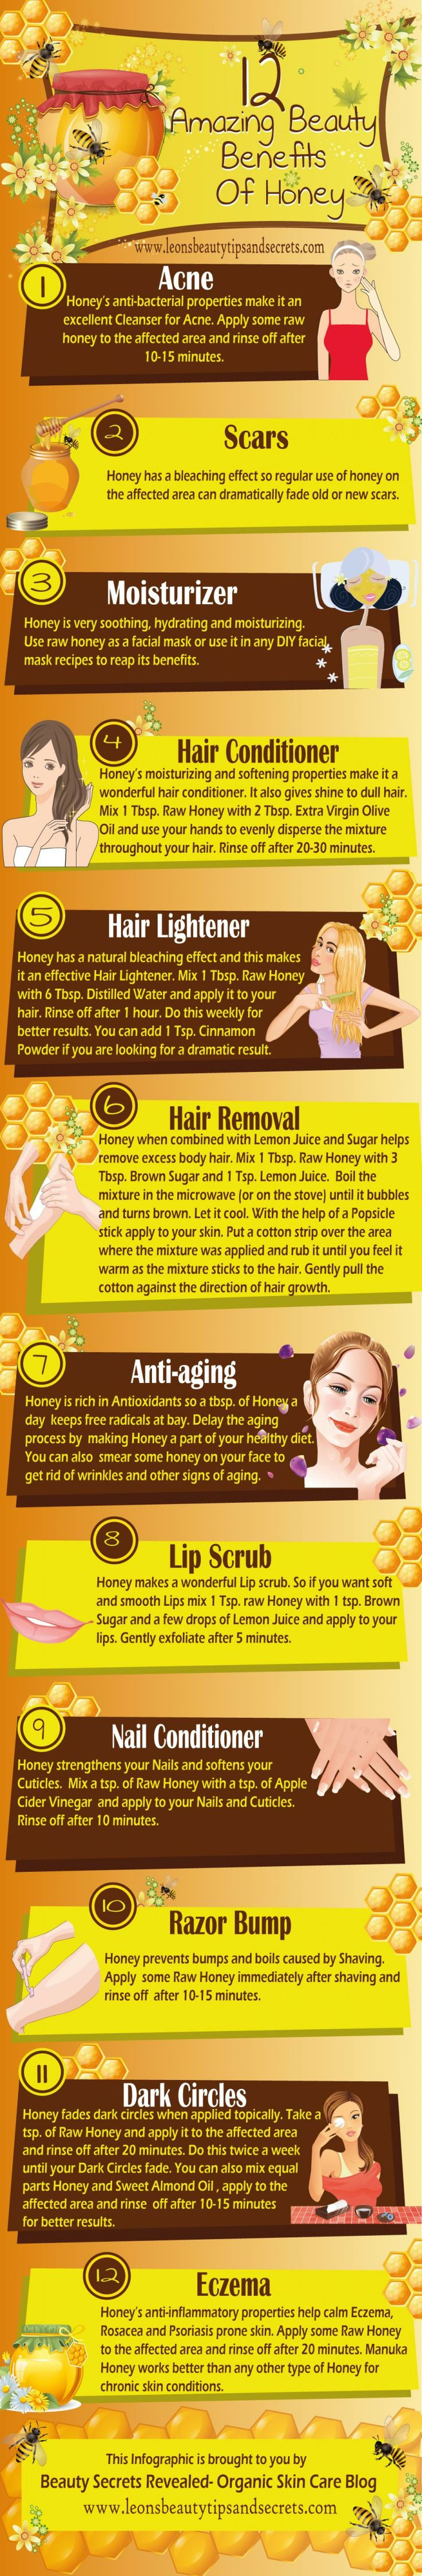 Facts and Amazing Benefits of Honey Infographic Benefits of Honey   51+ Amazing Health and Beauty Benefits [Infographic + Text]